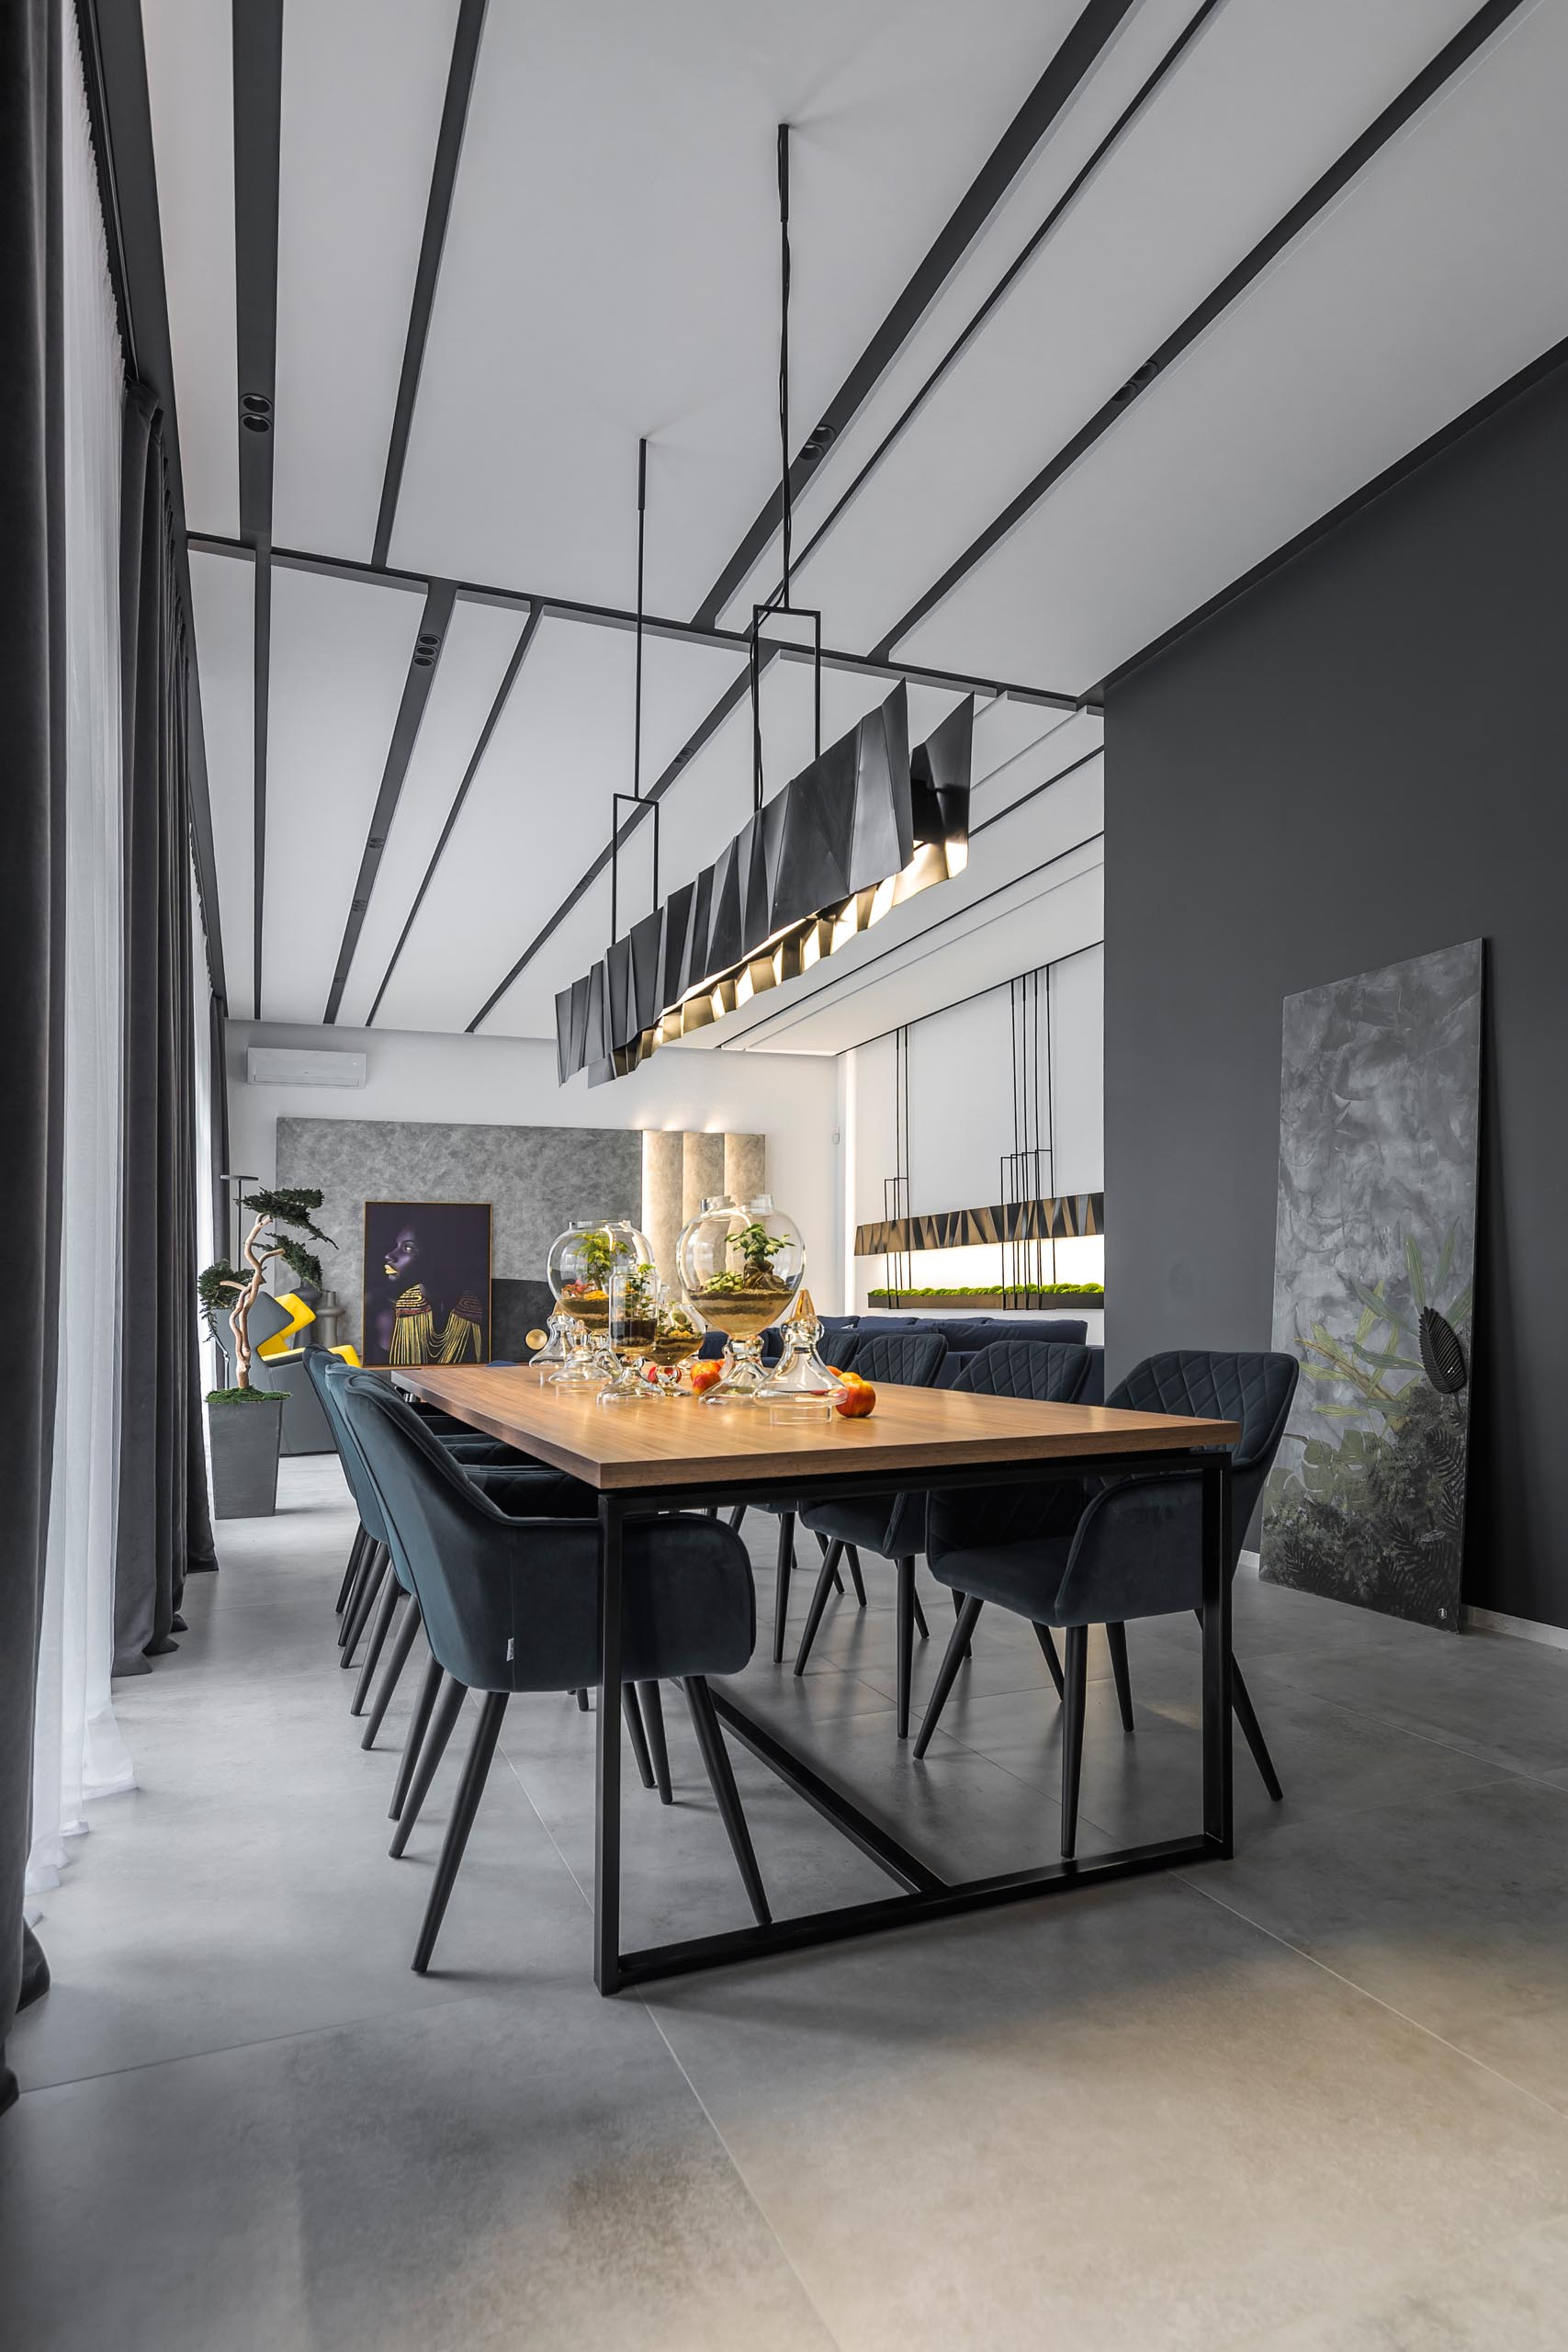 A modern dining room with wood table and a long matte black metal lighting fixture.